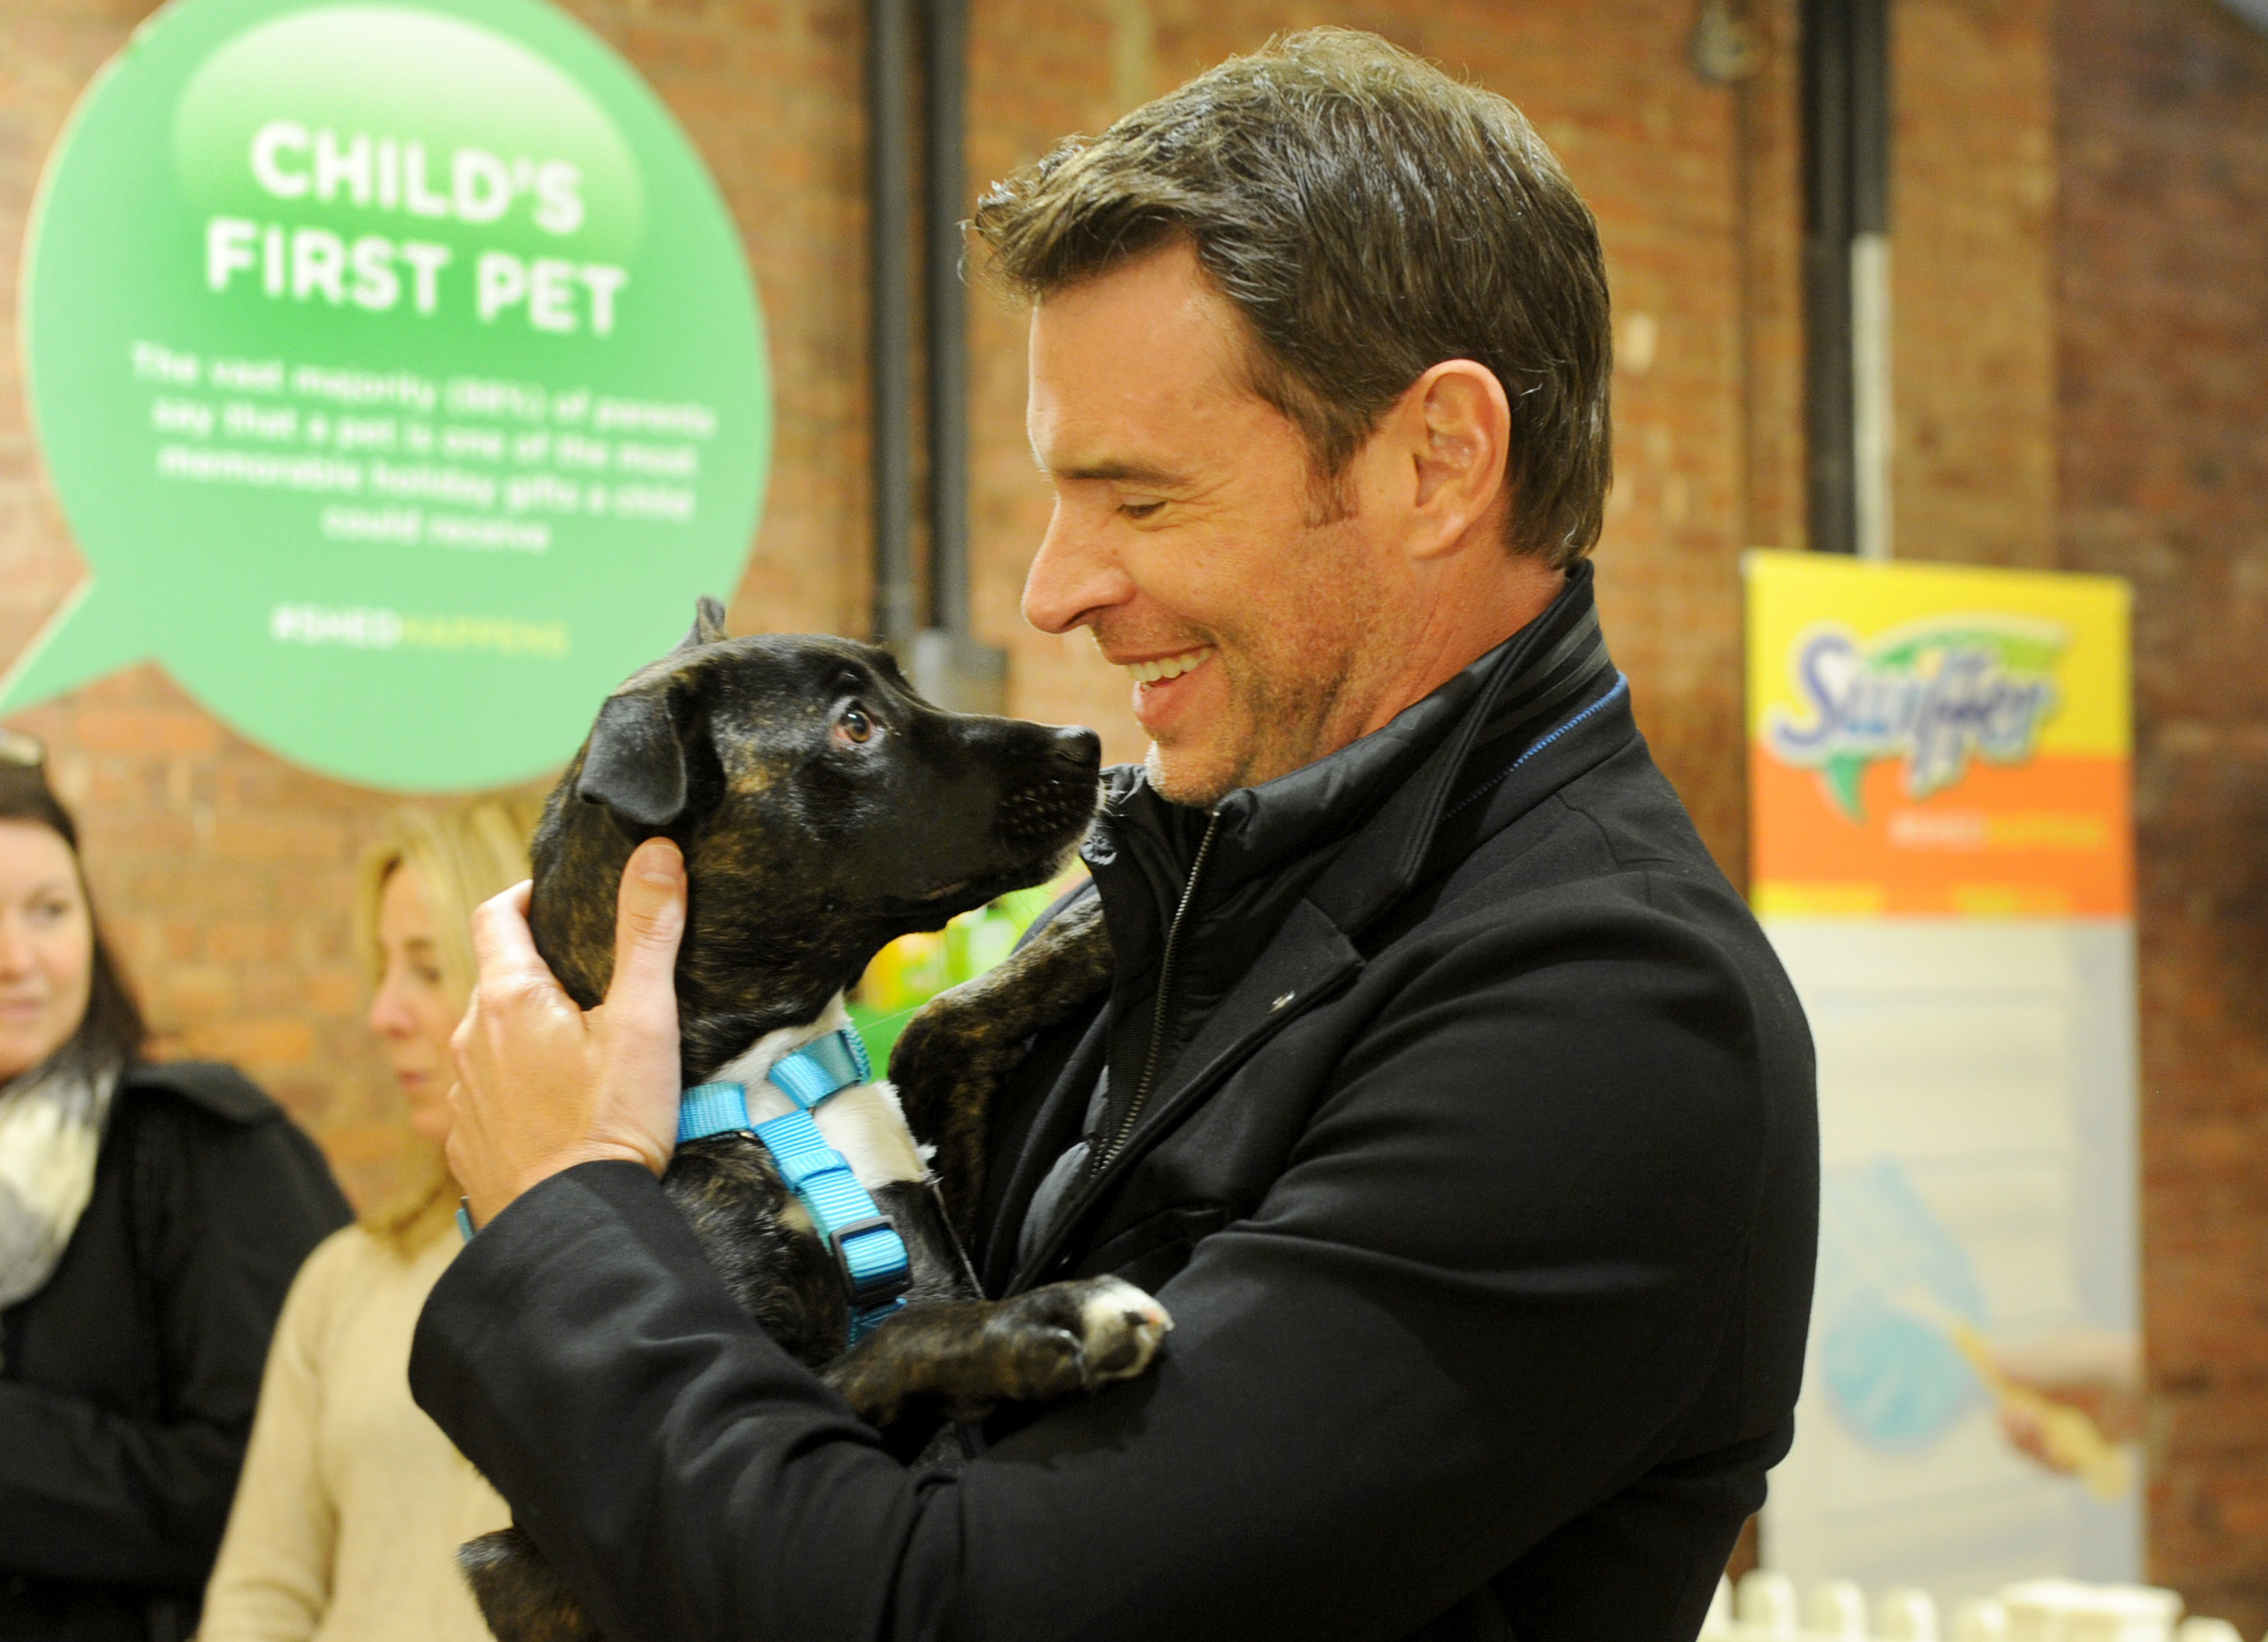 Swiffer, Bark & Co  and Actor Scott Foley Partner This